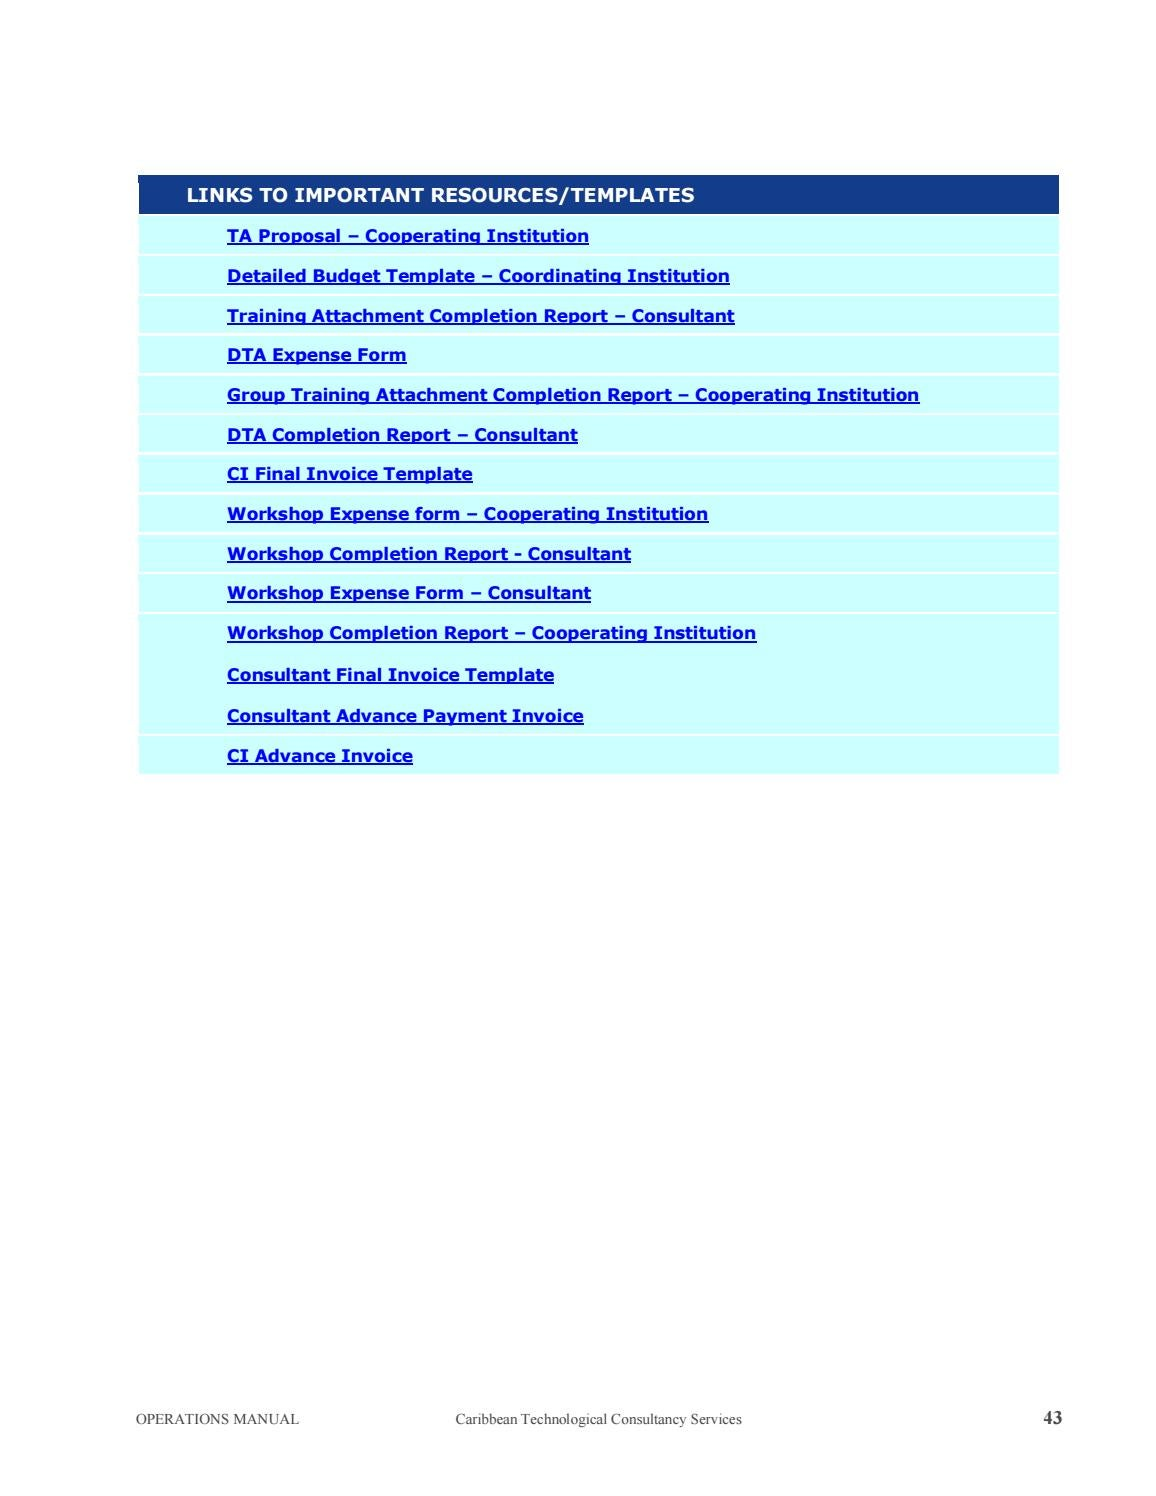 Operations Manual Caribbean Technological Consultancy